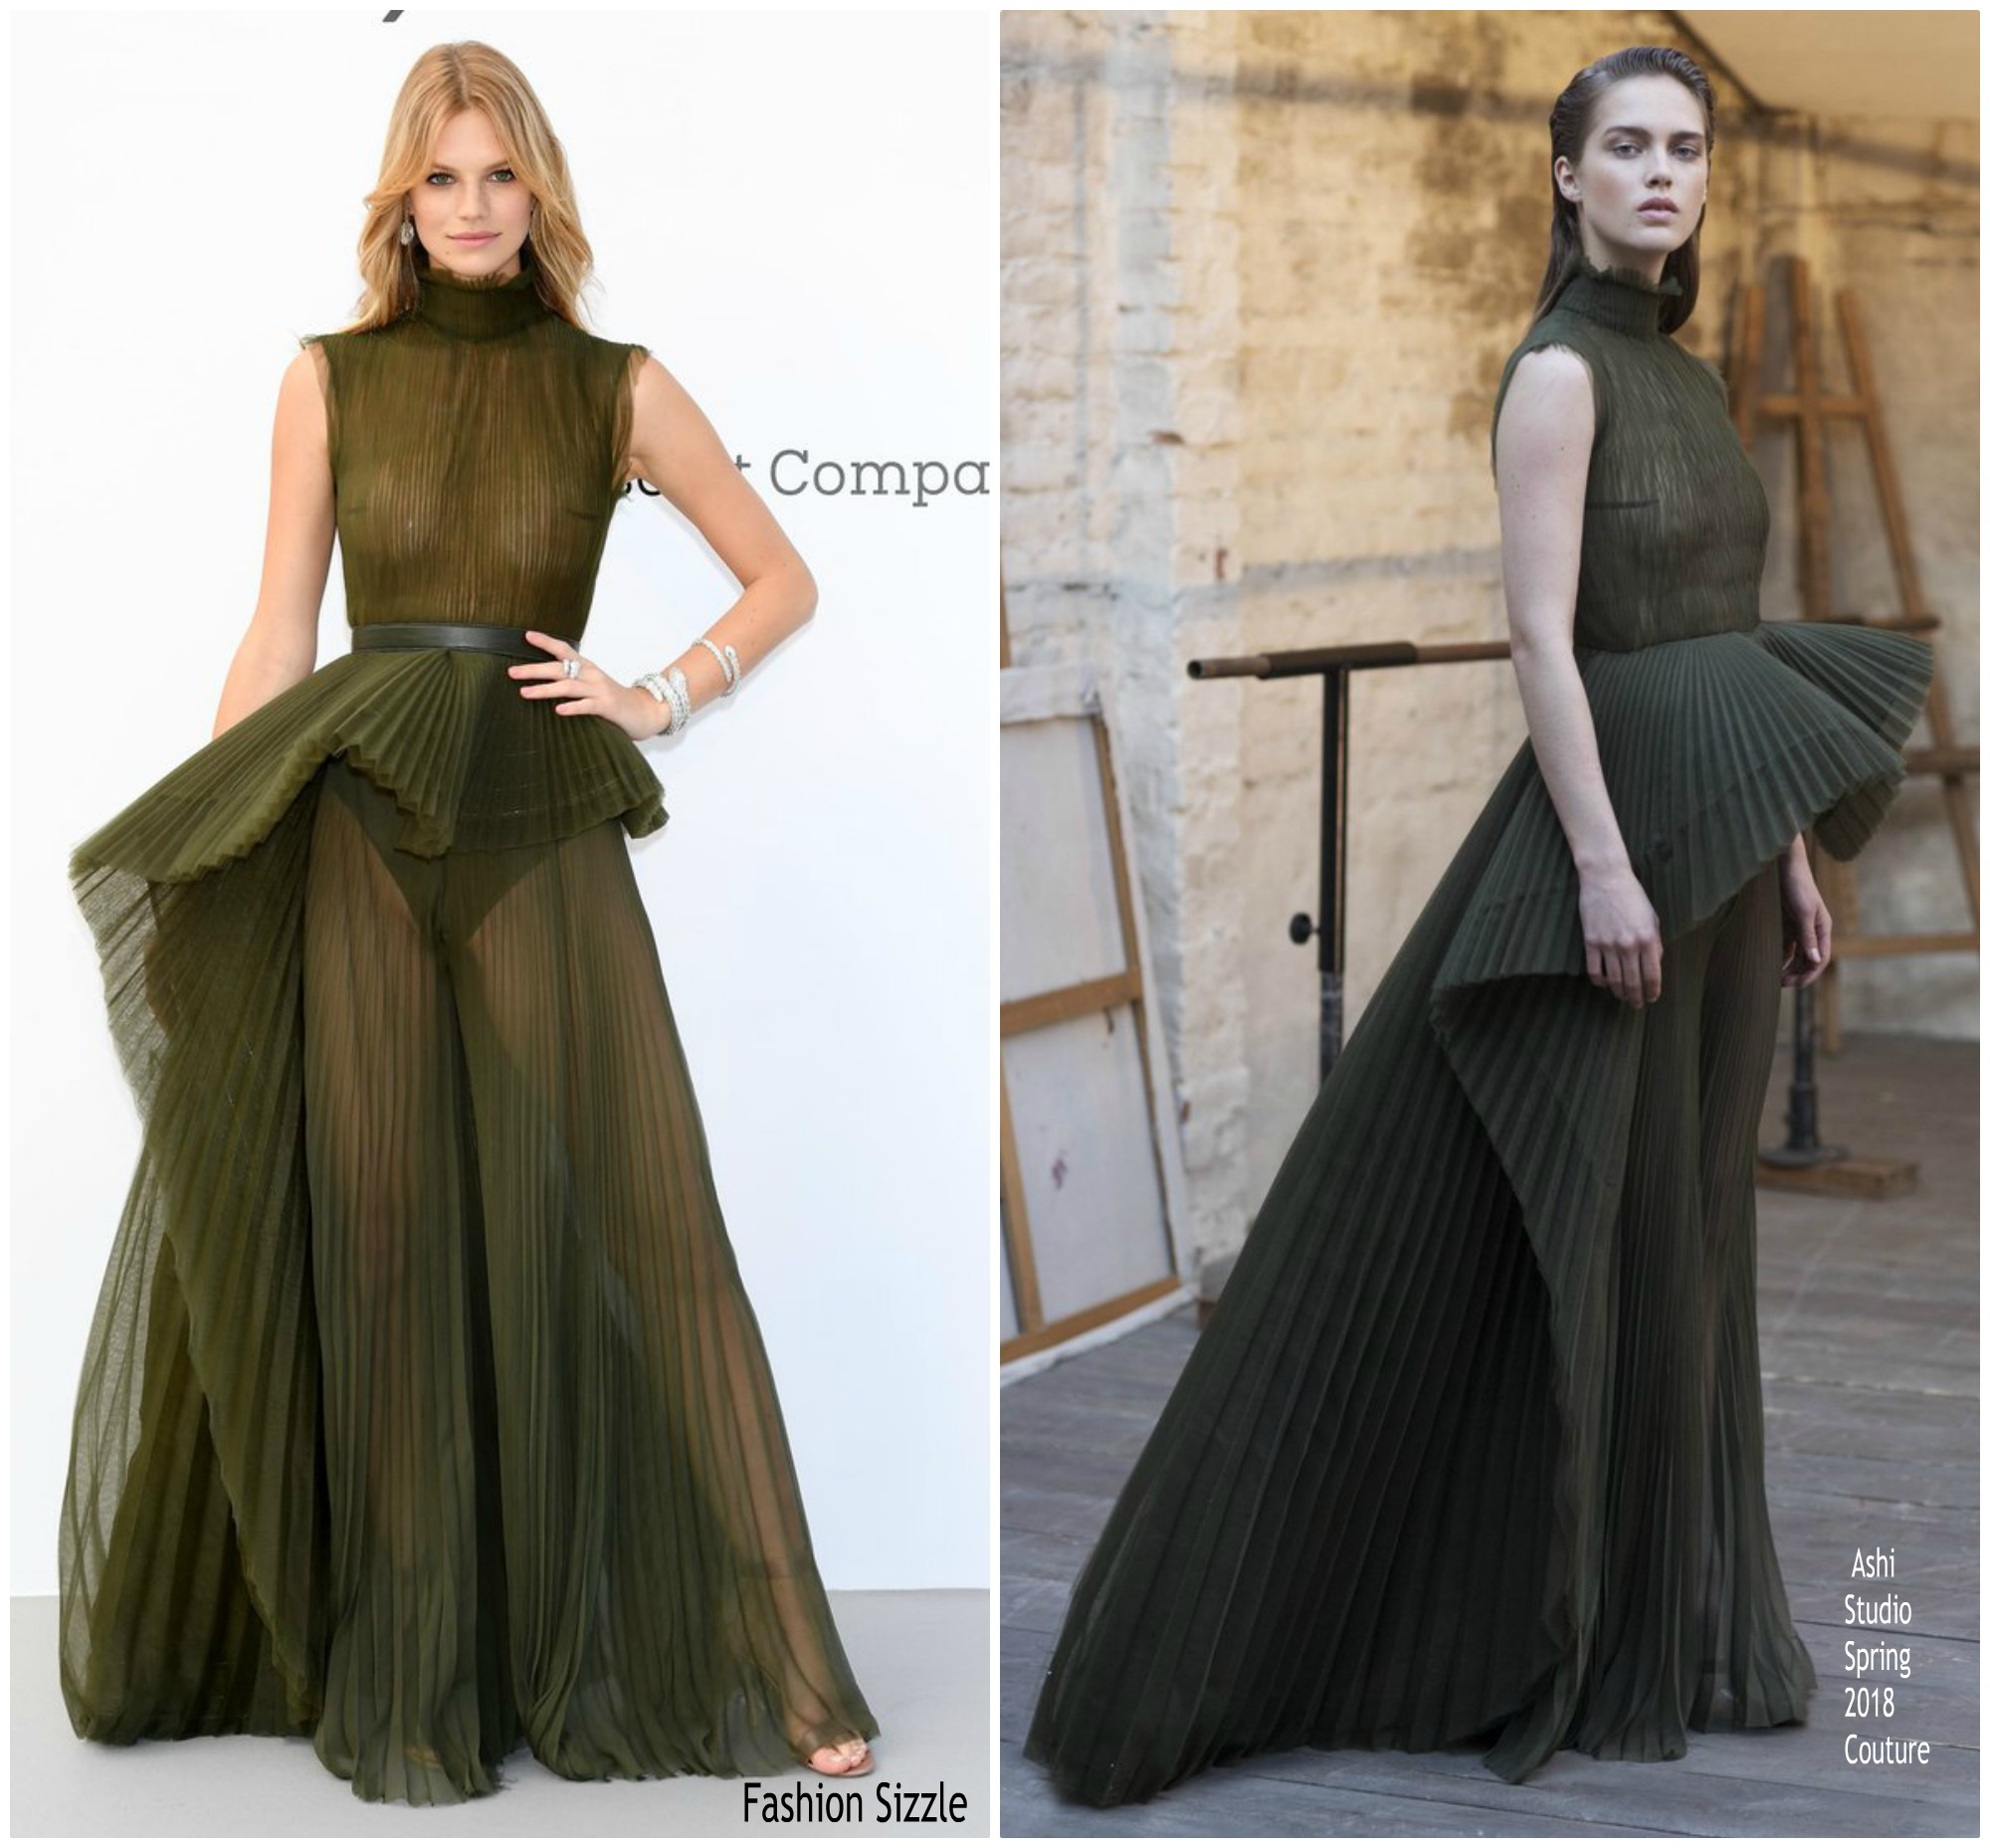 nadine-leopold-in-ashi-studio-couture-amfar-gala-cannes-2018